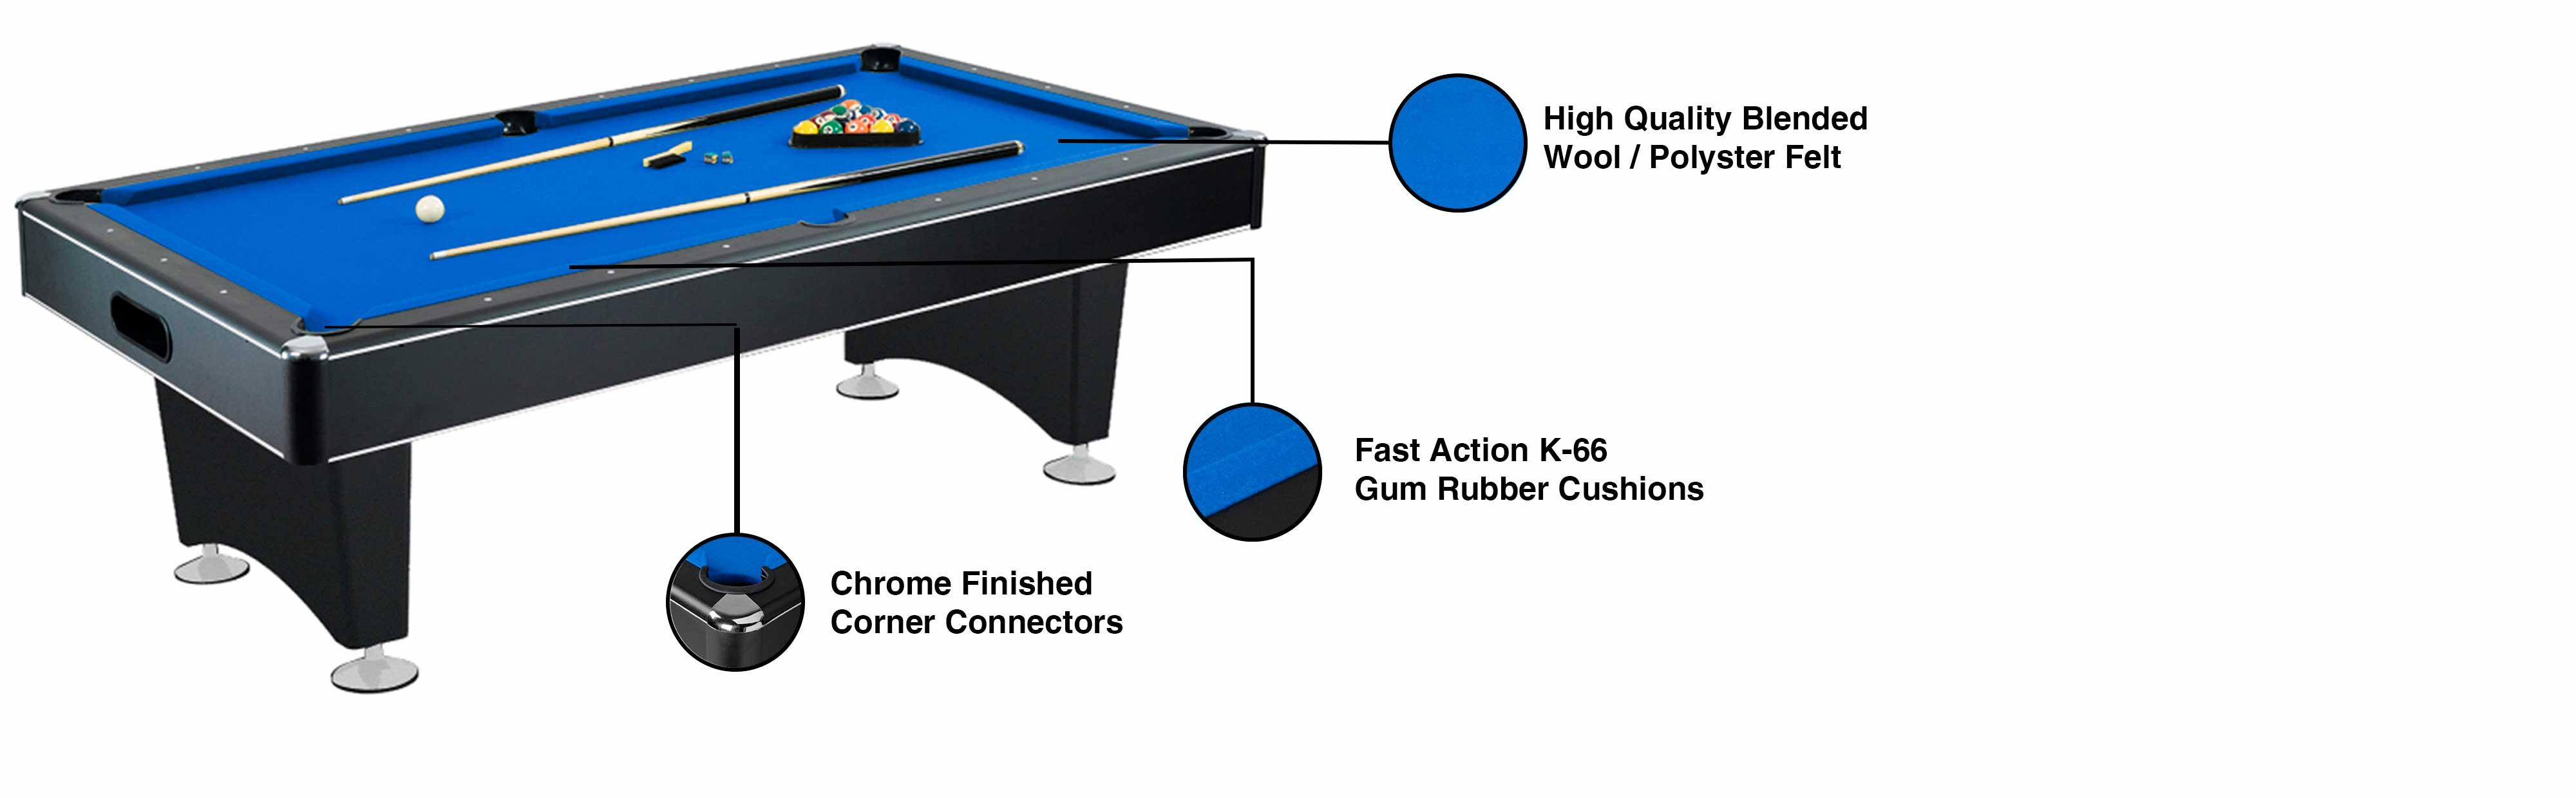 Amazoncom Hathaway Hustler Pool Table With Blue Felt - Sleek pool table